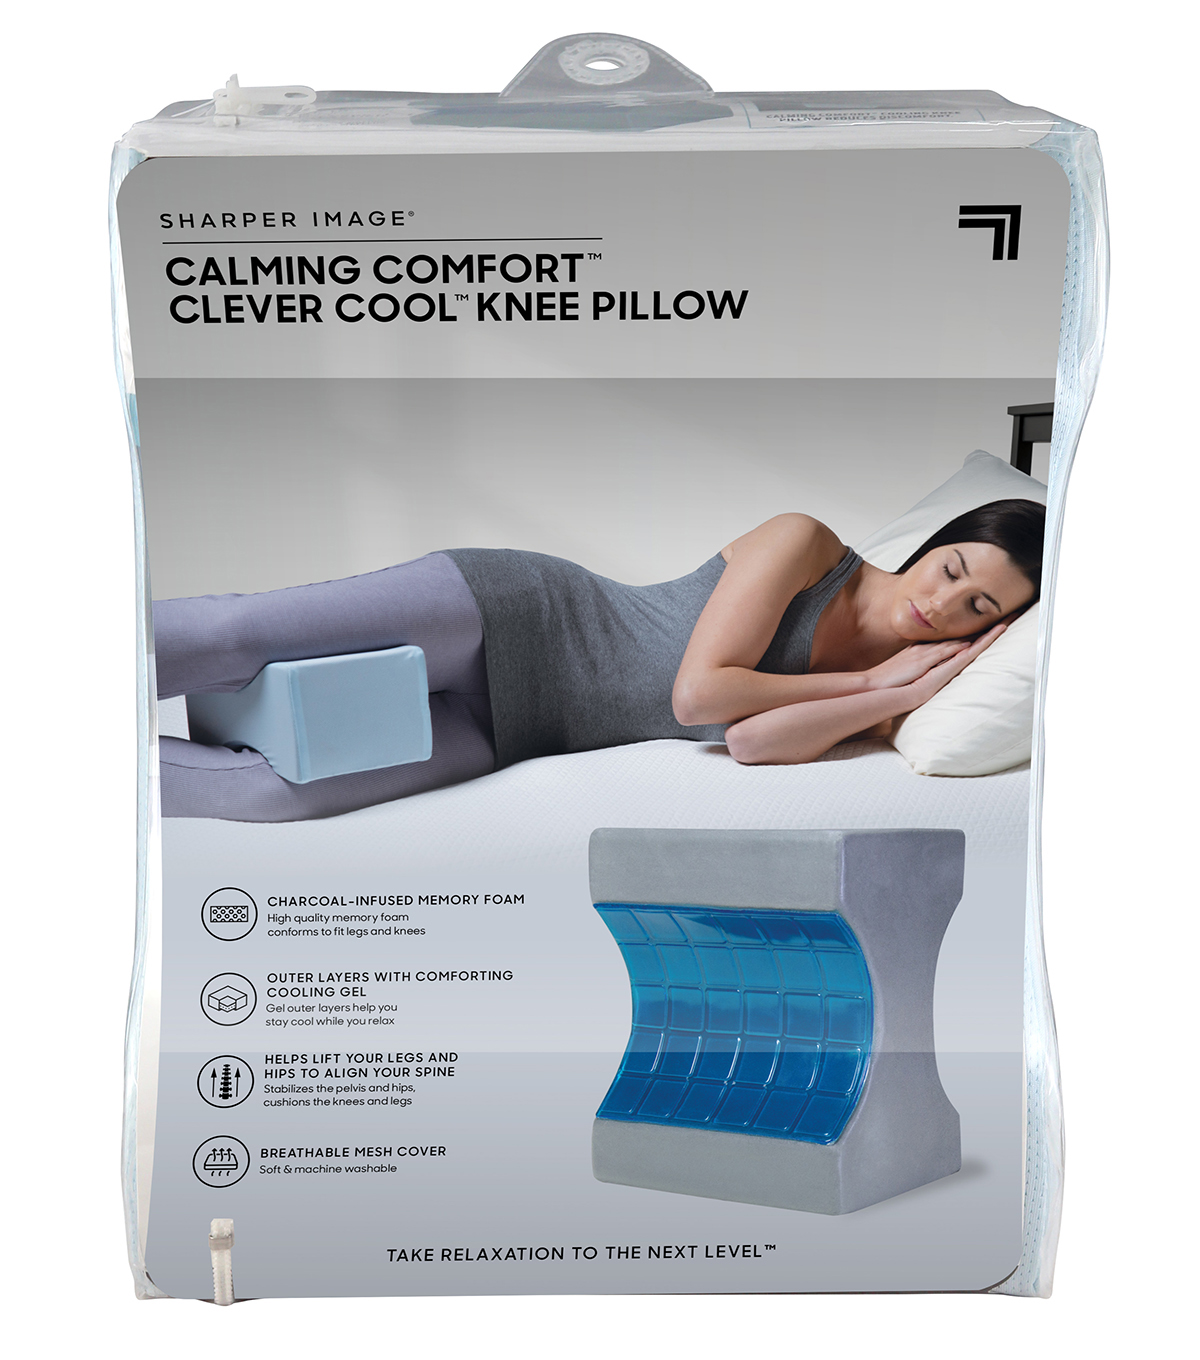 Helps Side Sleepers Align Spine Calming Comfort Cooling Knee Pillow by Sharper Image Charcoal Infused Memory Foam with Cooling Gel